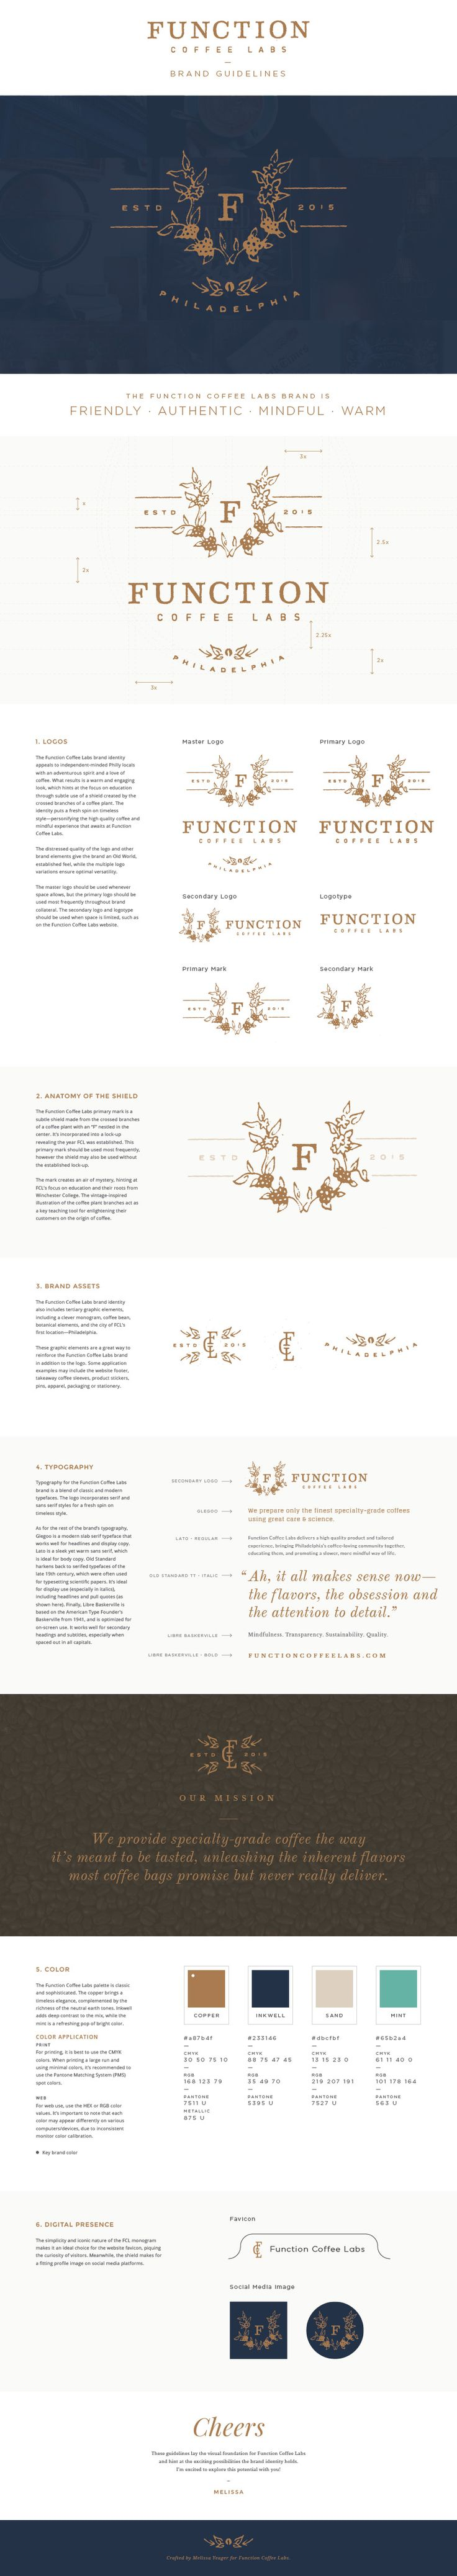 Function Coffee Labs - logo design & brand guidelines - Melissa Yeager